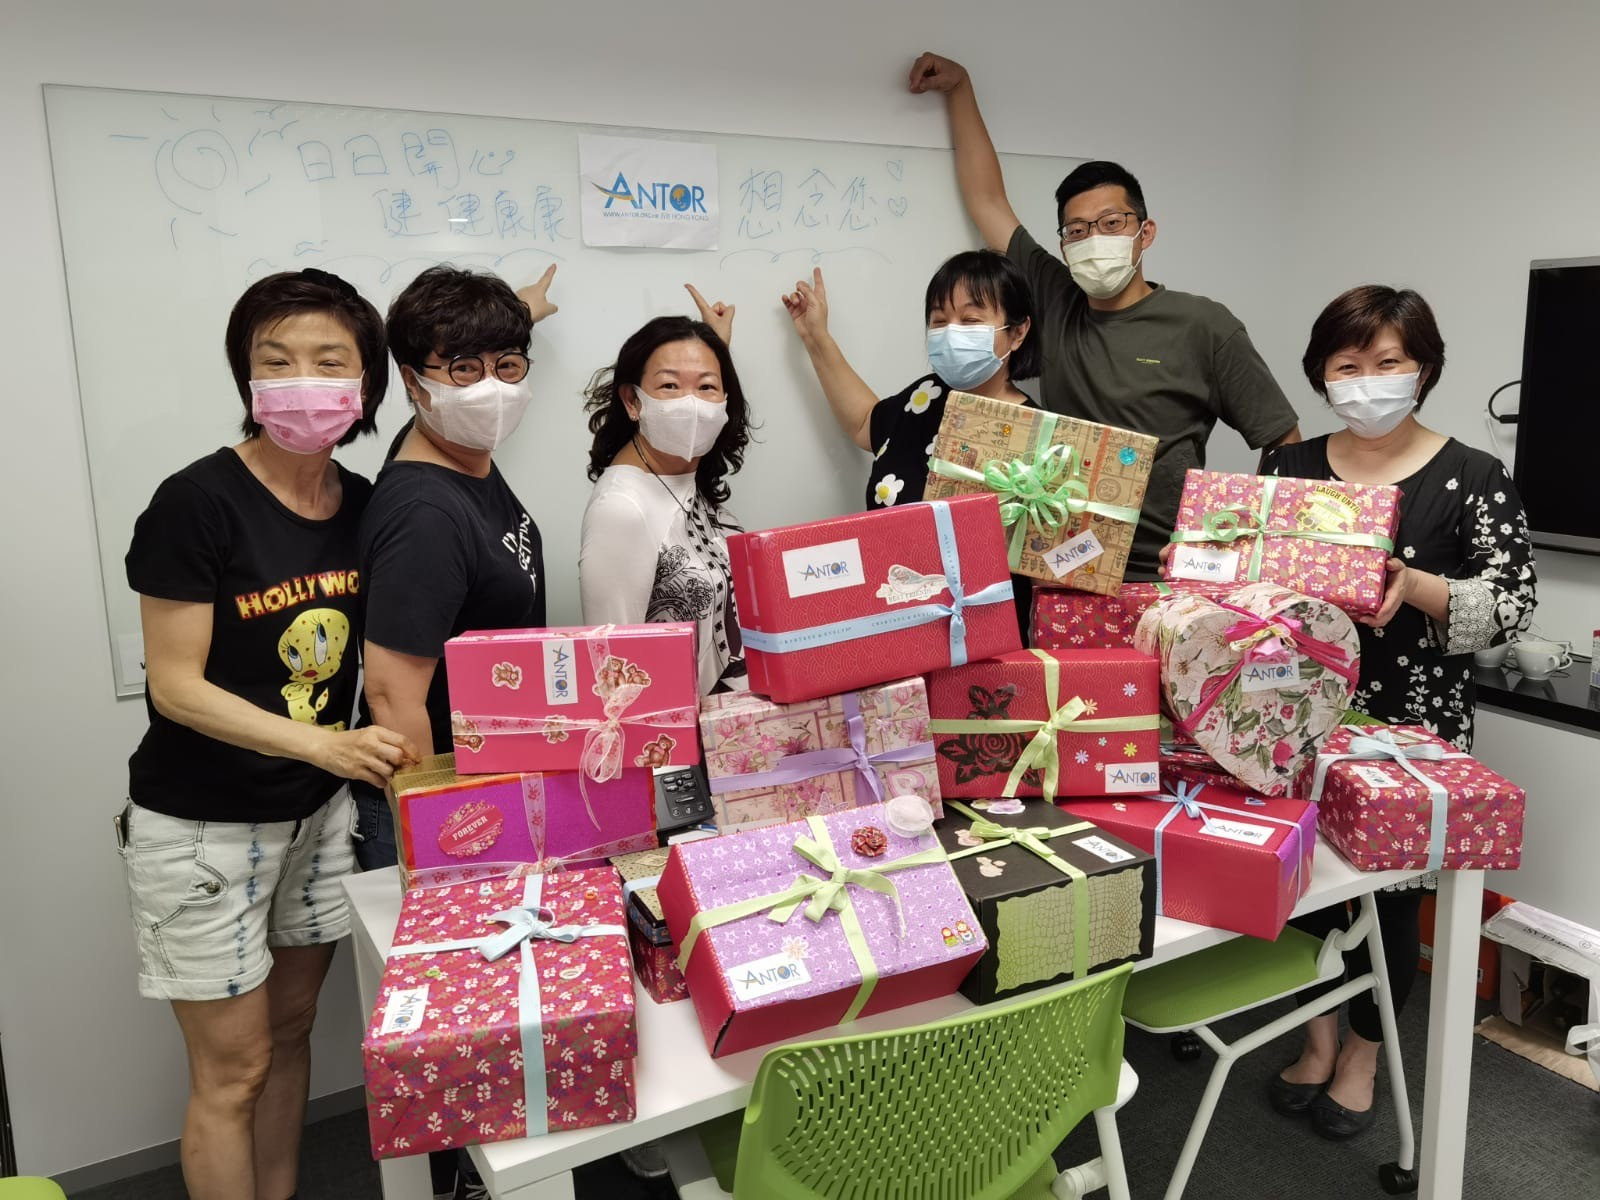 ANTOR Boxes for Elderly Campaign